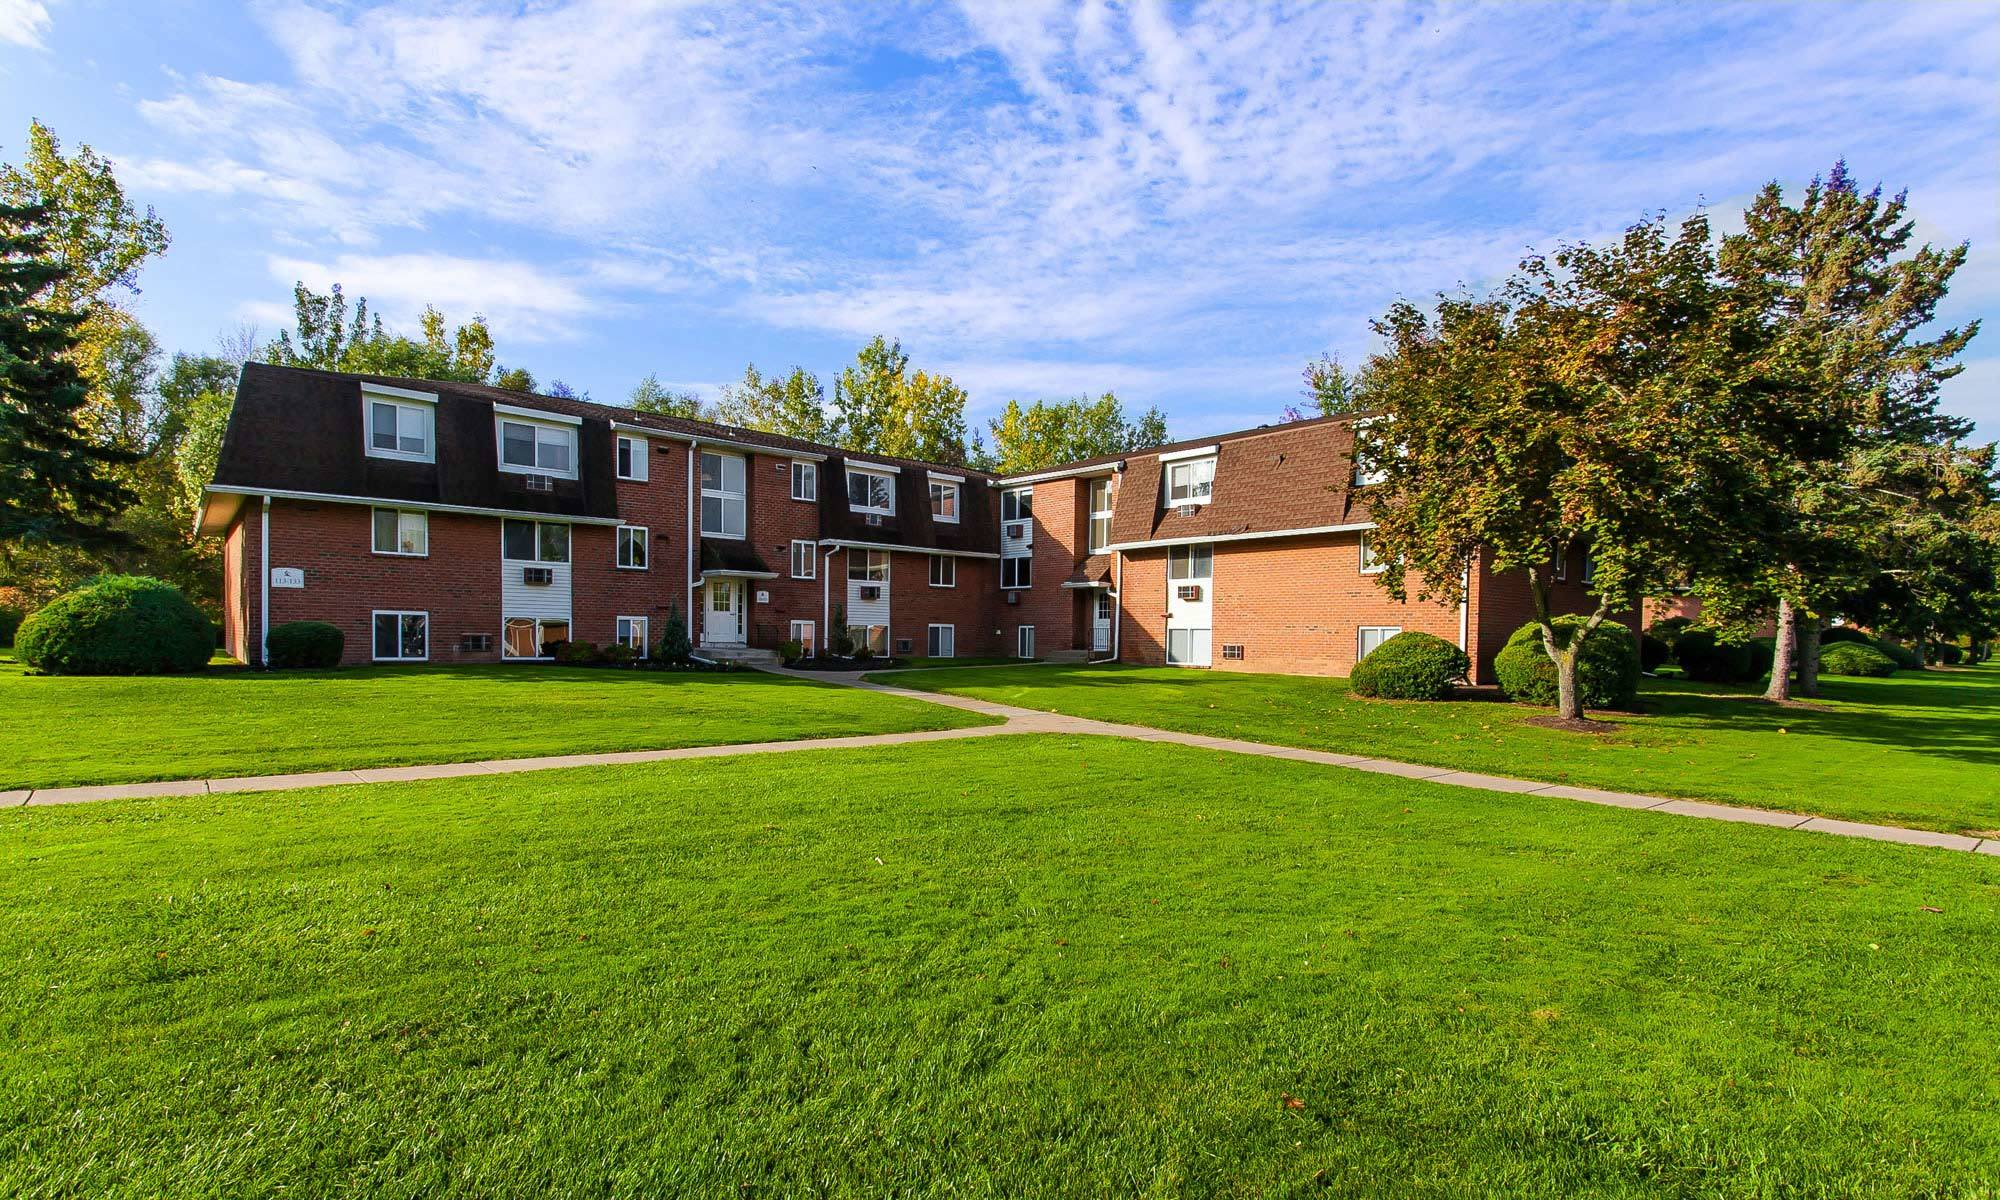 Apartments in Brockport, New York